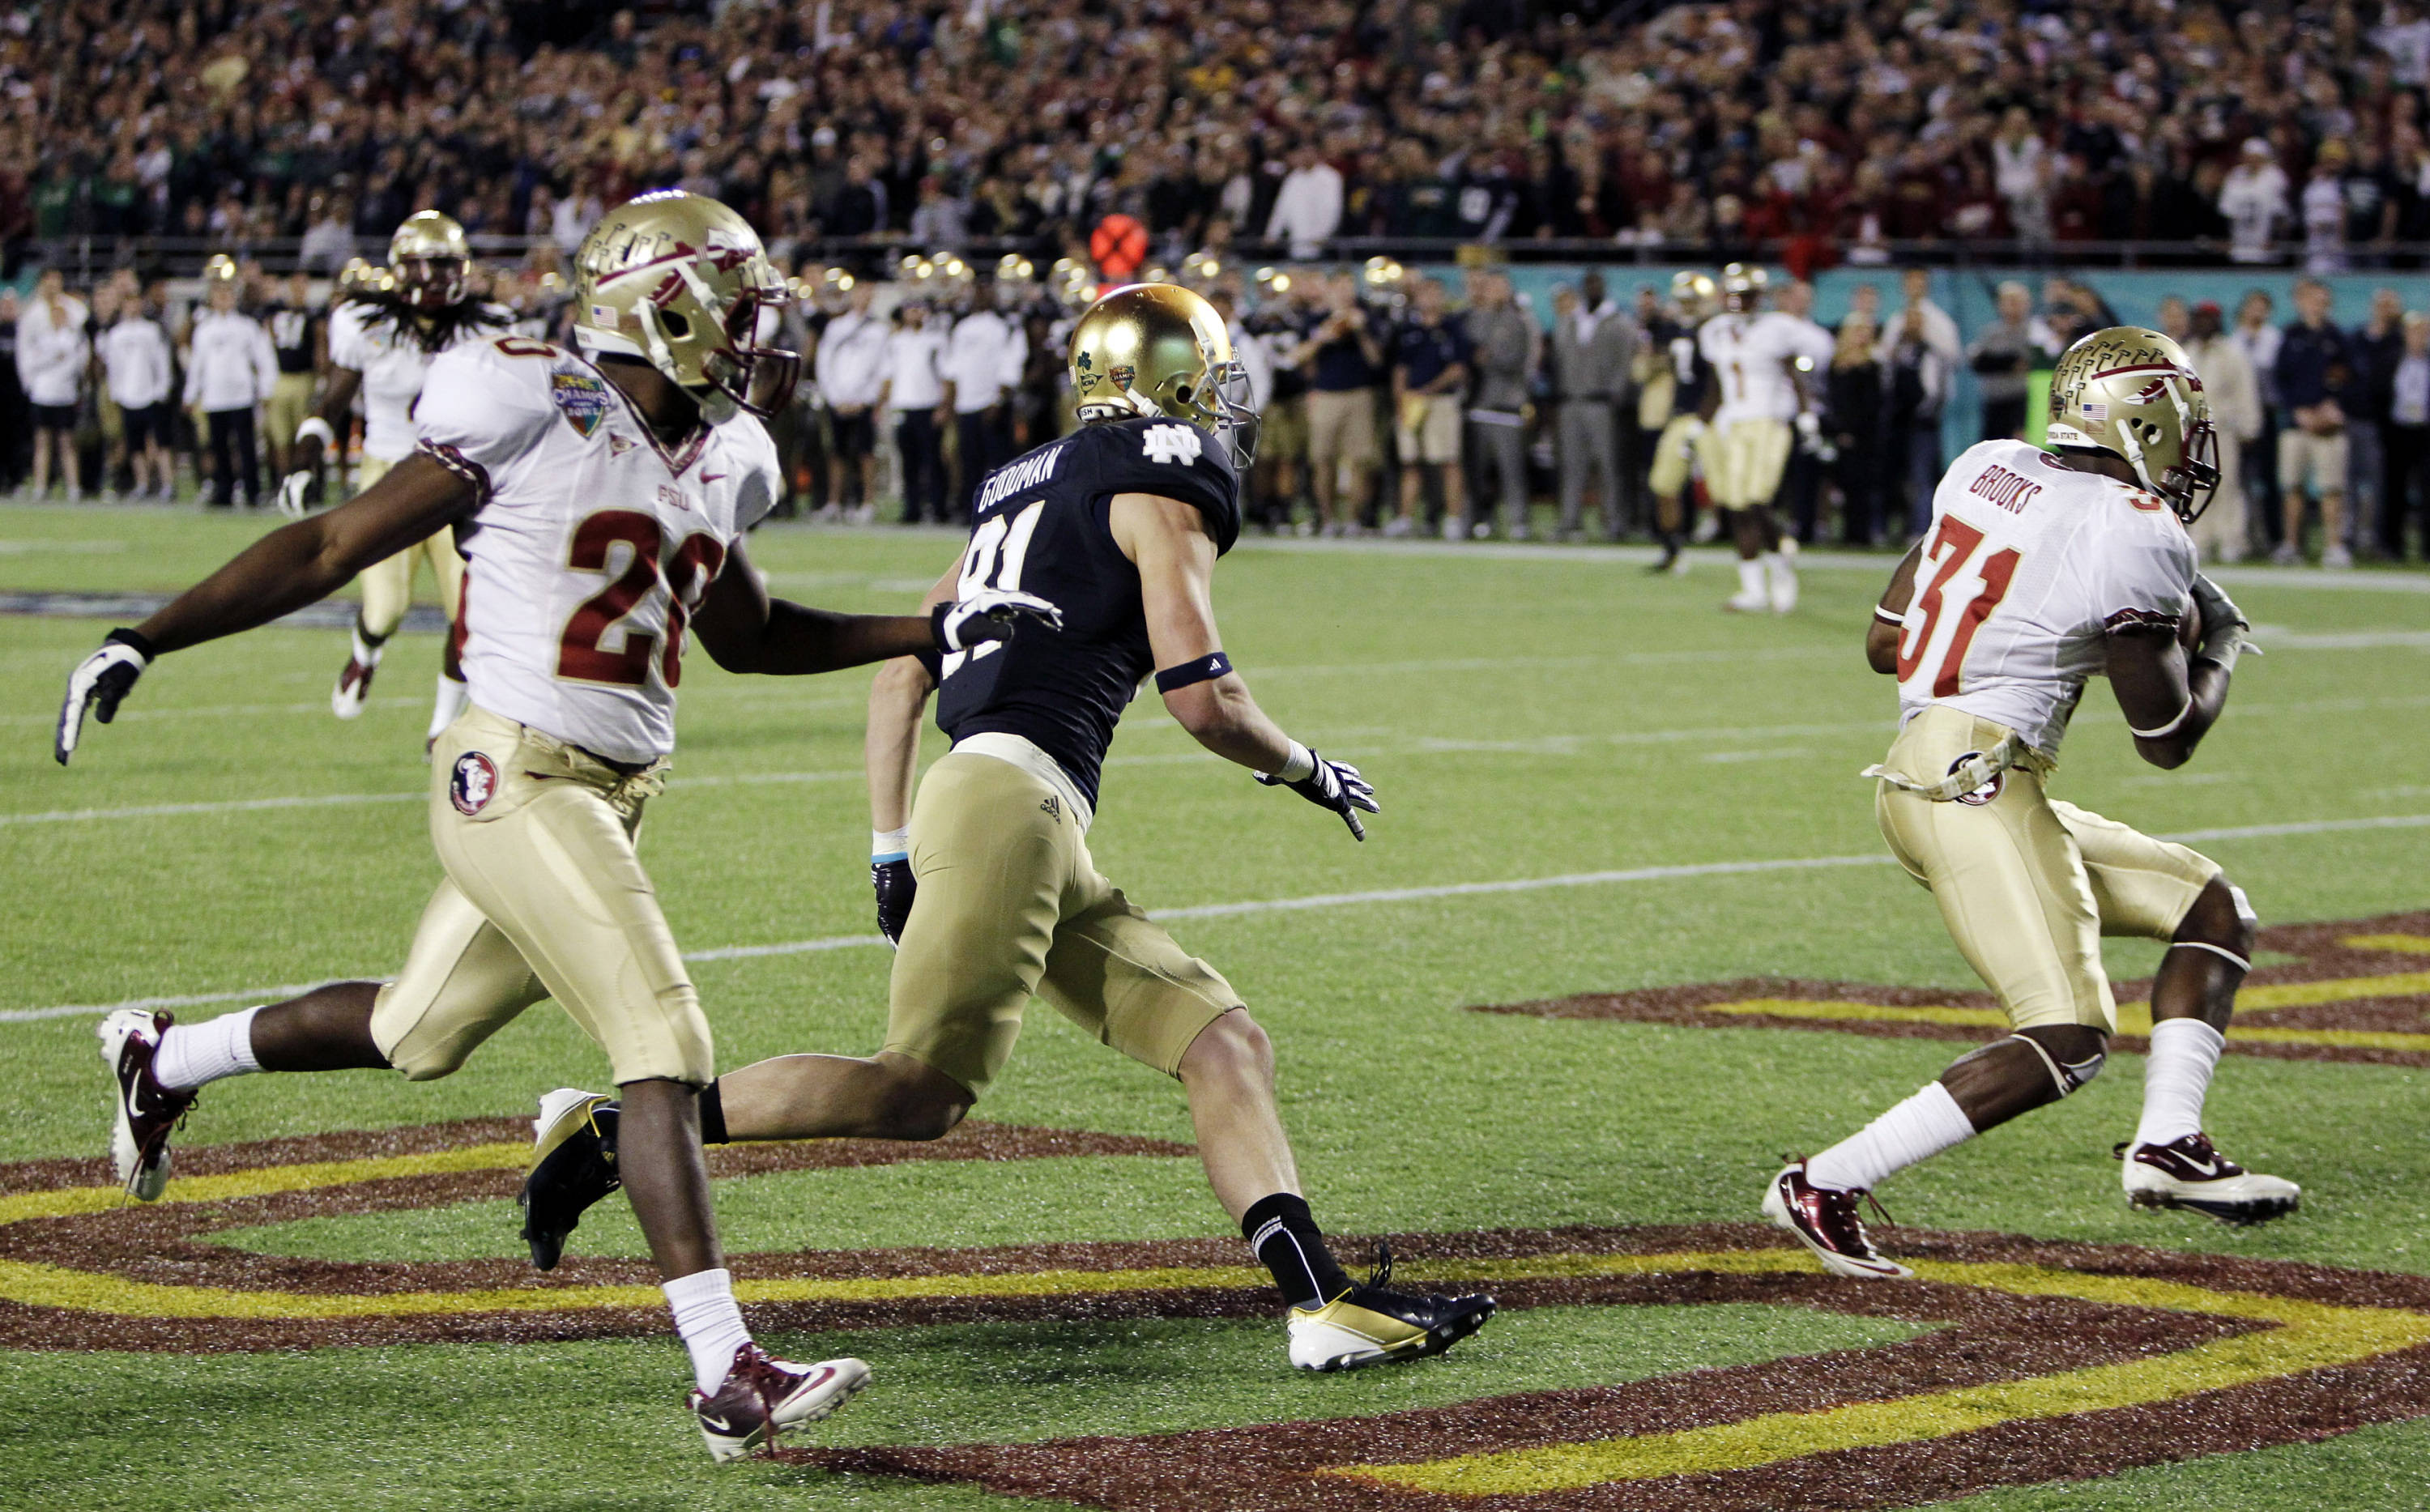 Florida State defensive back Terrence Brooks intercepts a pass intended for Notre Dame wide receiver John Goodman (81) during the second half. (AP Photo/John Raoux)